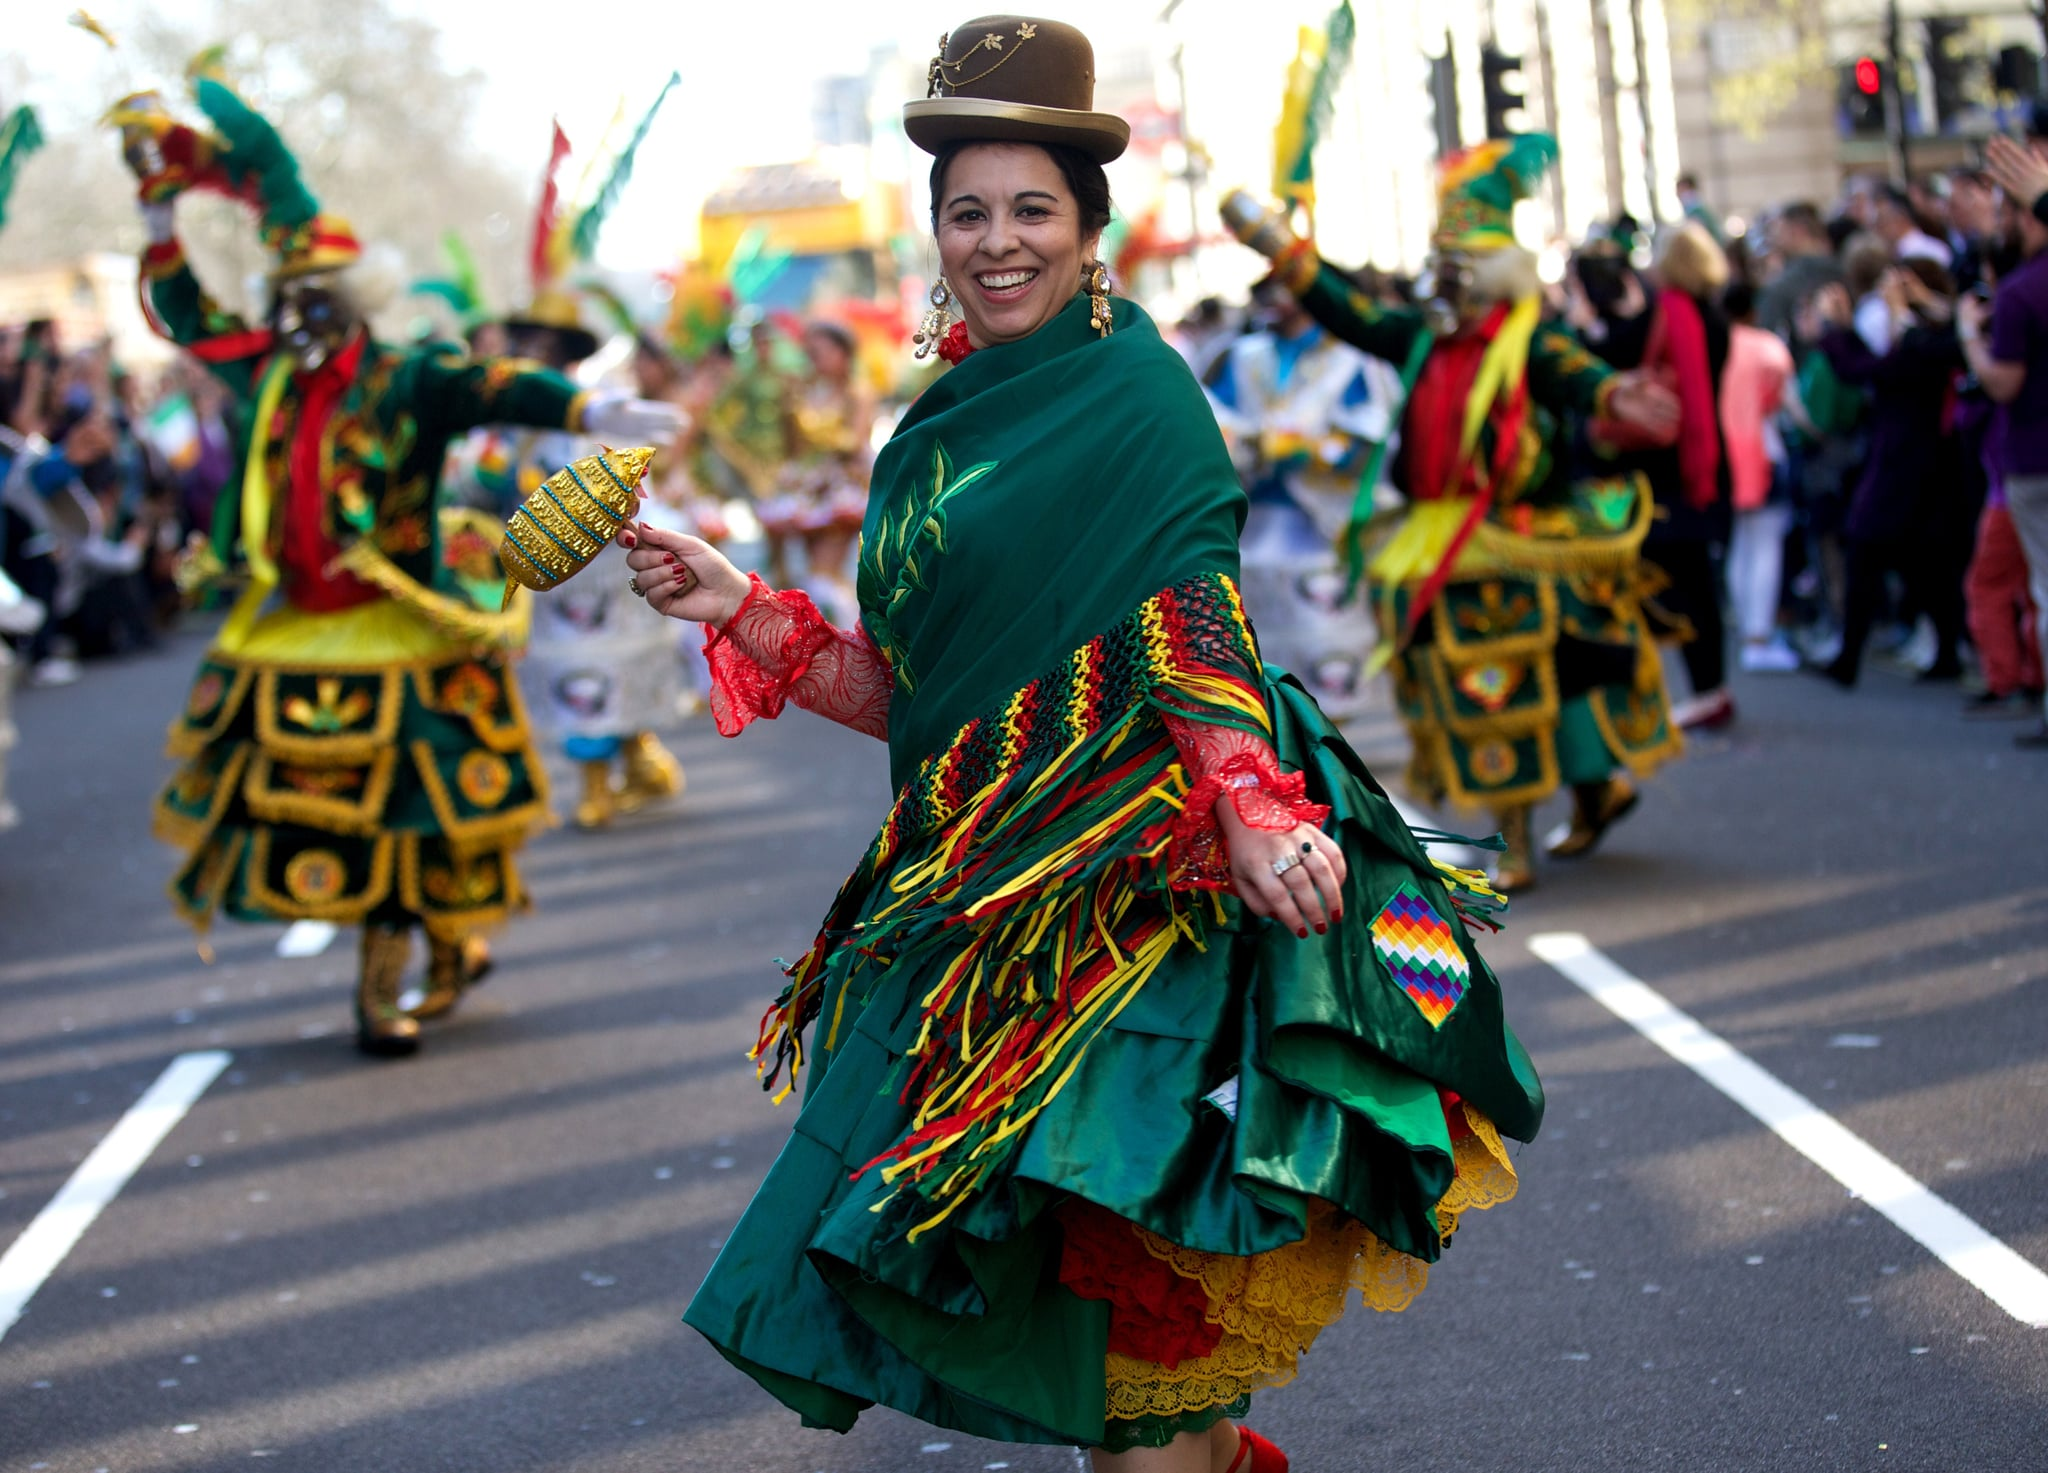 In London, people got in the Irish spirit with a festive parade.